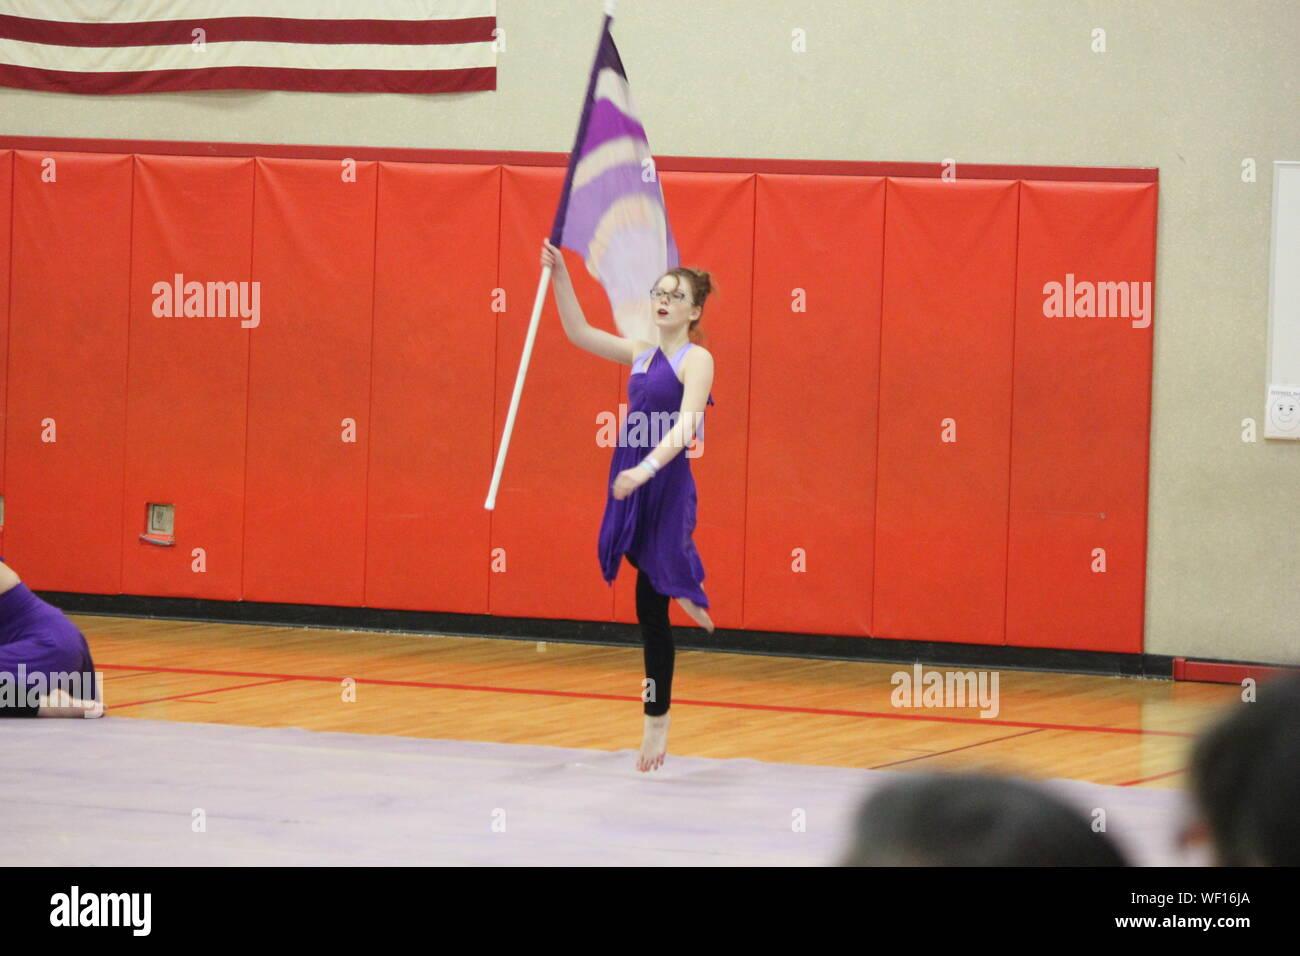 Ballet Dancer Holding Flag While Performing Winter Guard In Gymnasium Stock Photo